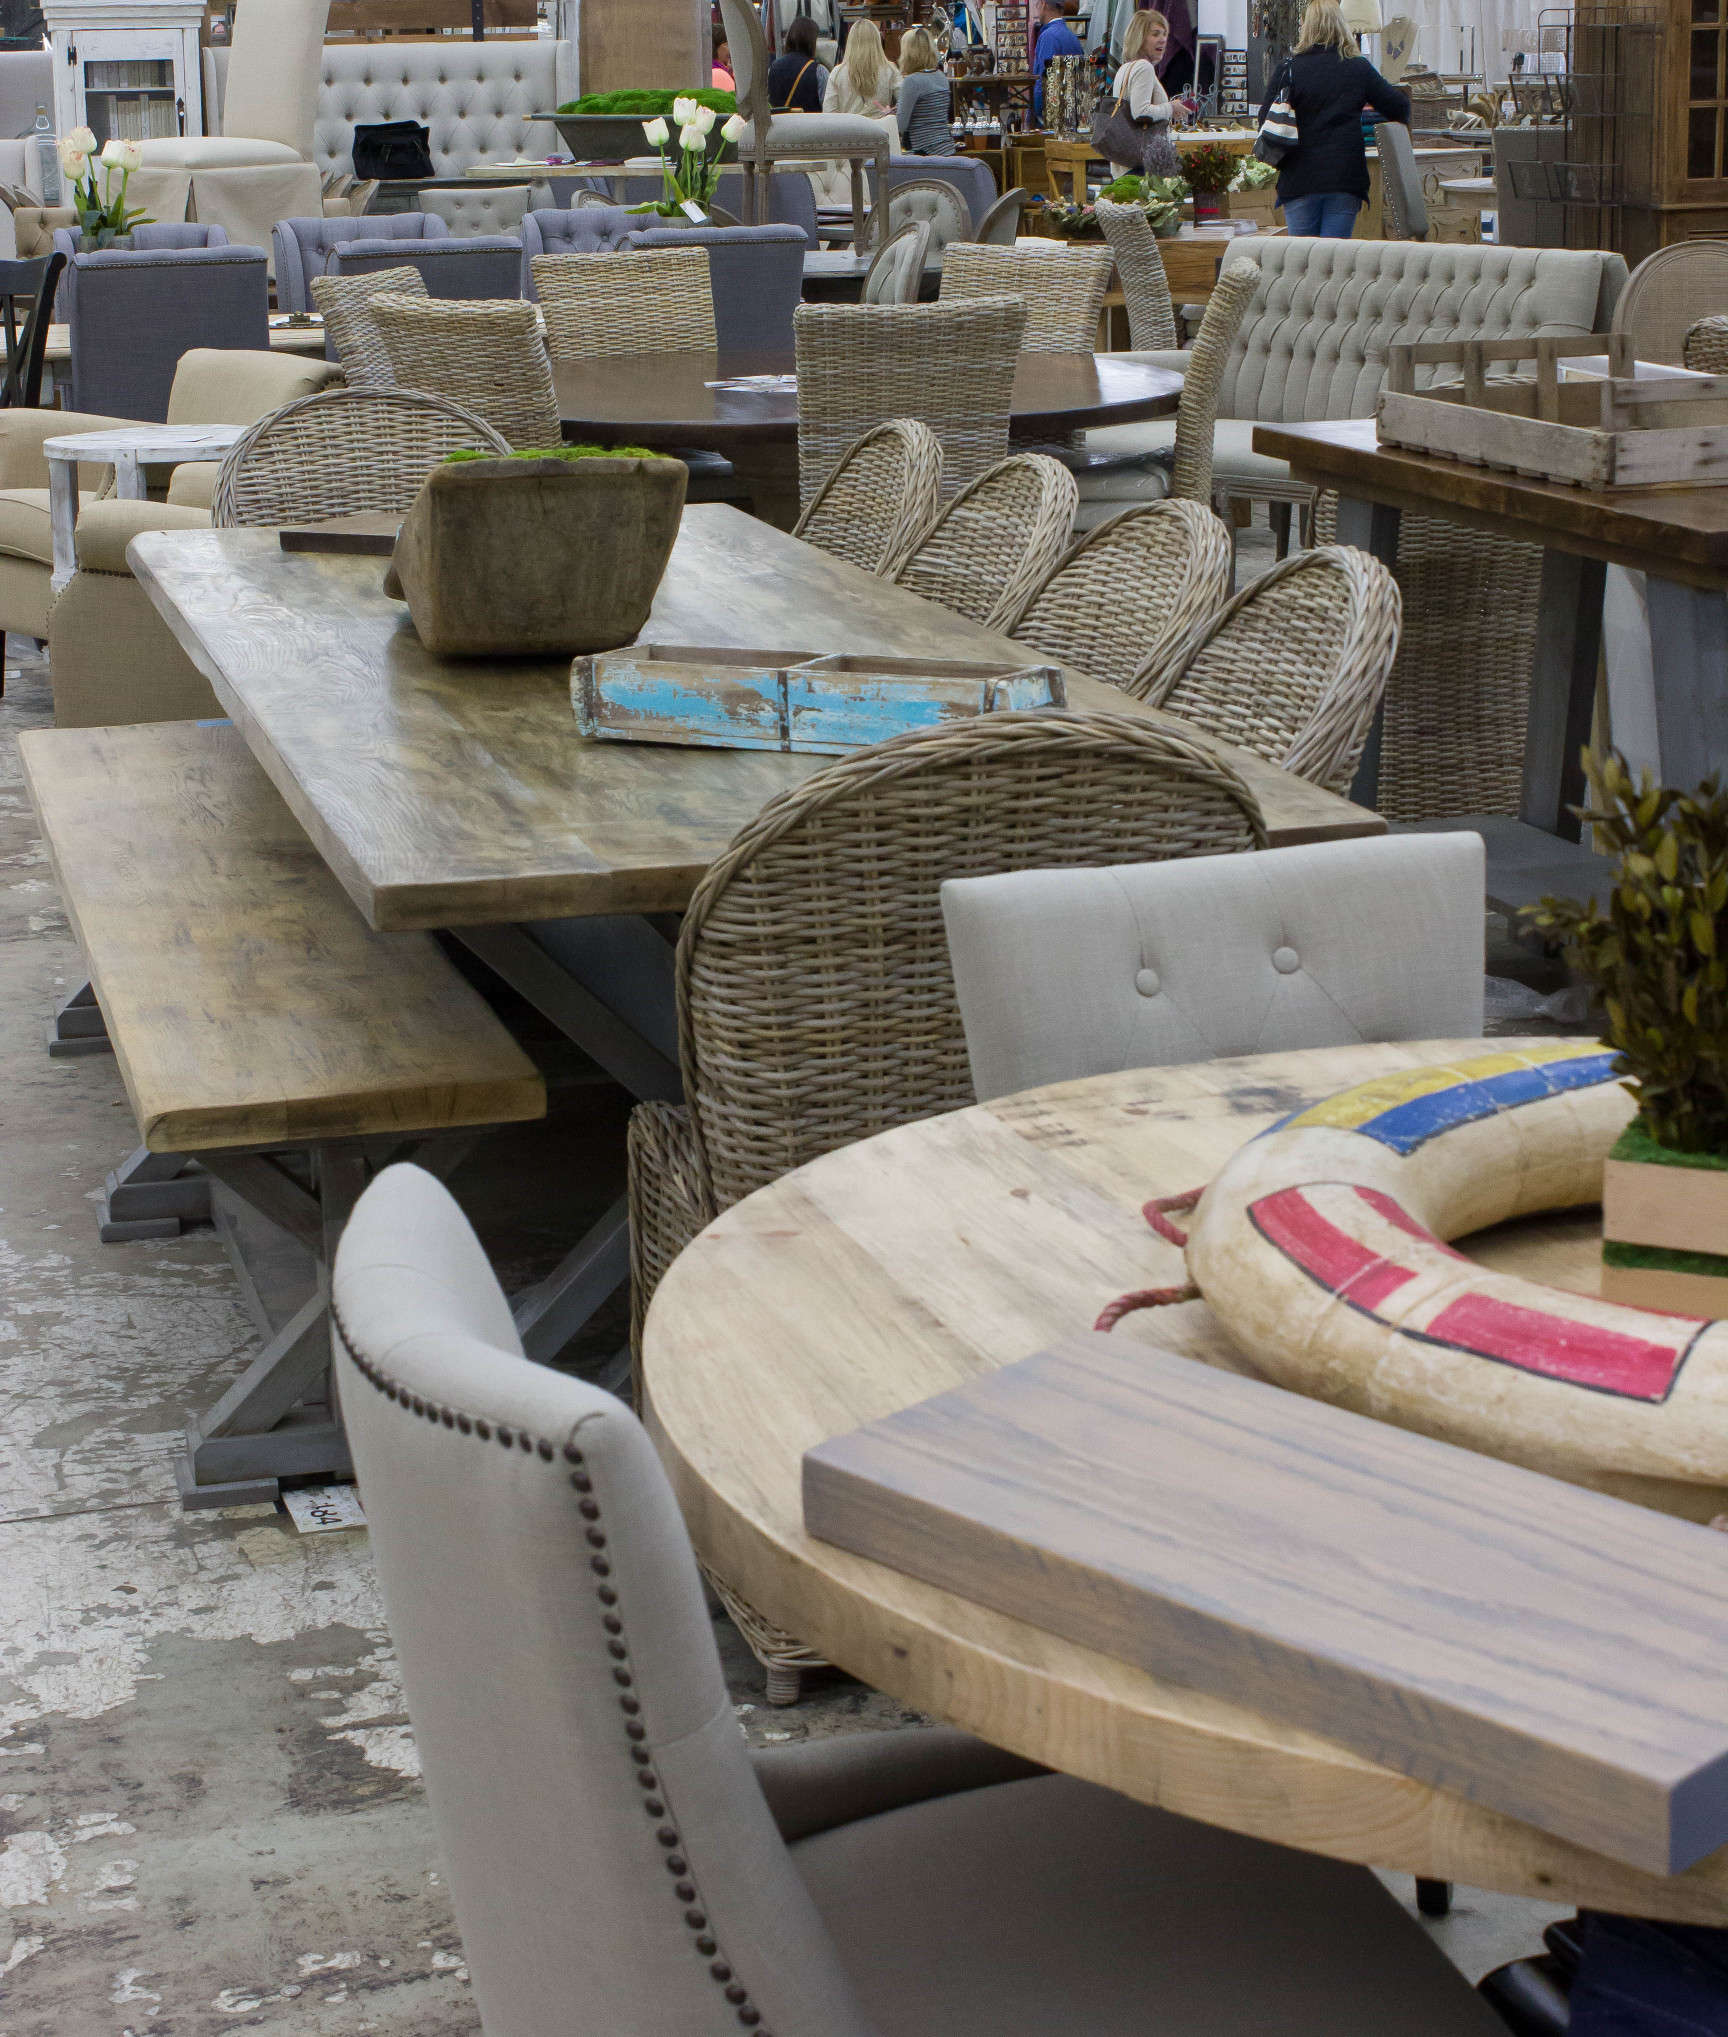 Exceptional To Place An Order Call 336 885 7474 Or Email Adamsfurniture@triadbiz.rr.com.